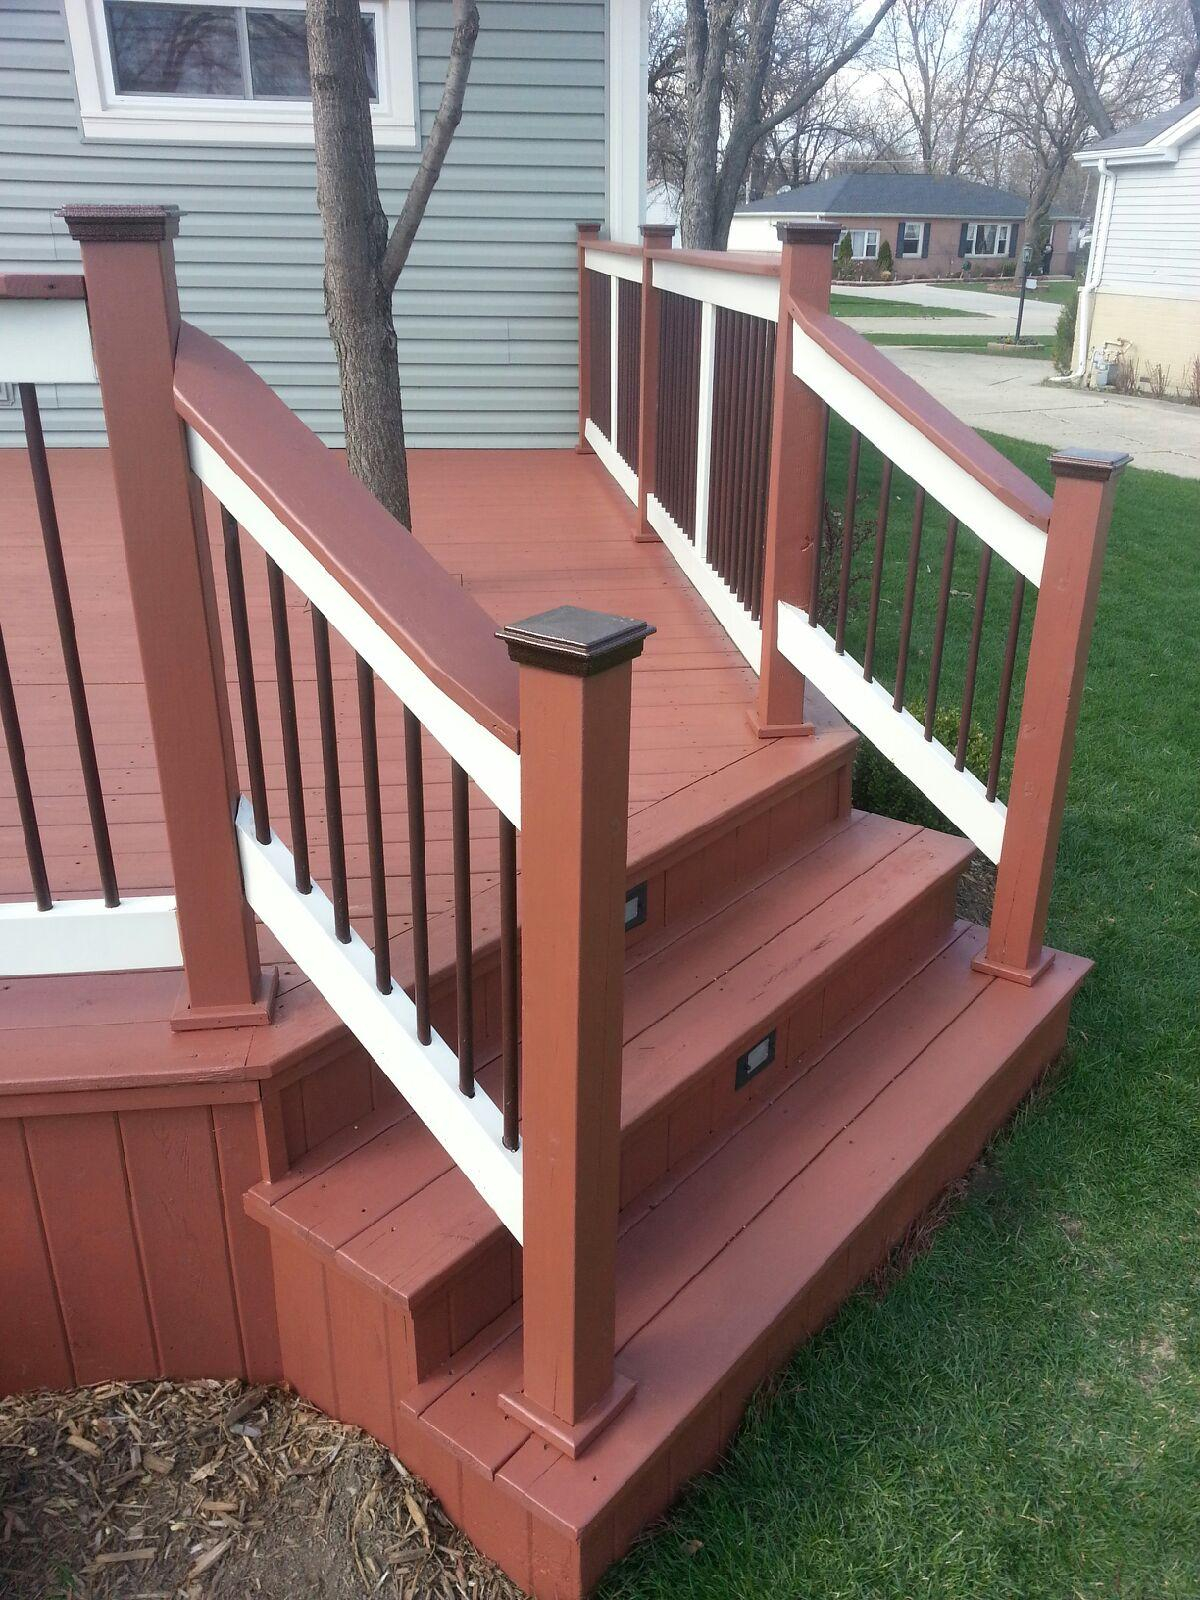 Northcraft Deck Staining Company Elgin Illinois Deck Cleaning intended for dimensions 1200 X 1600